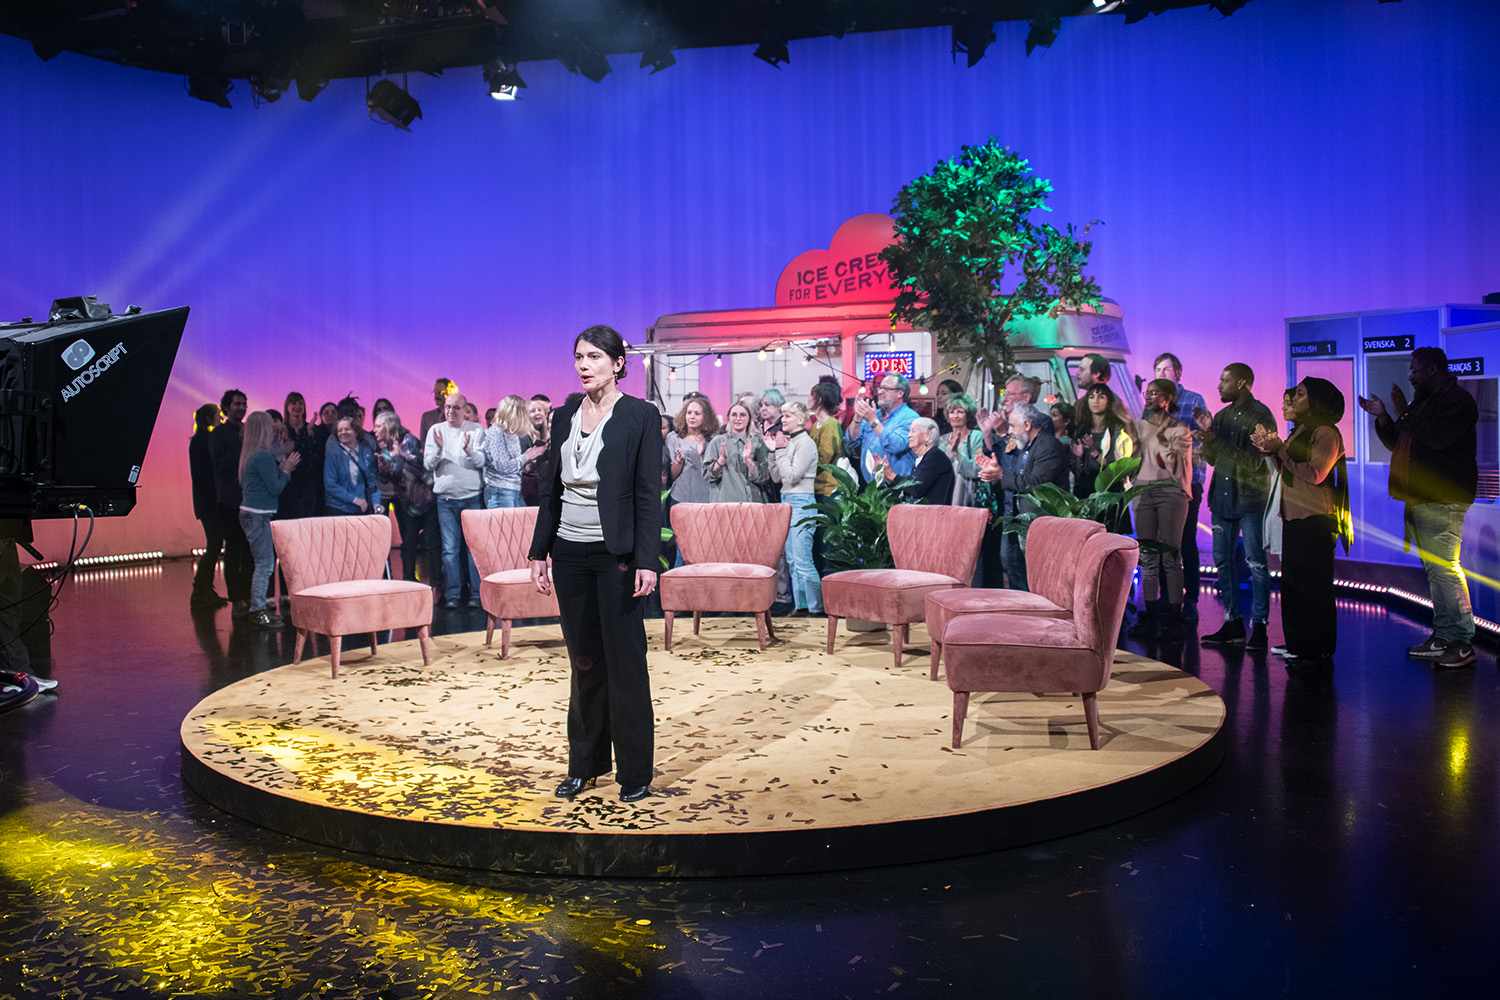 Audience in a TV-studio with a woman in the front.